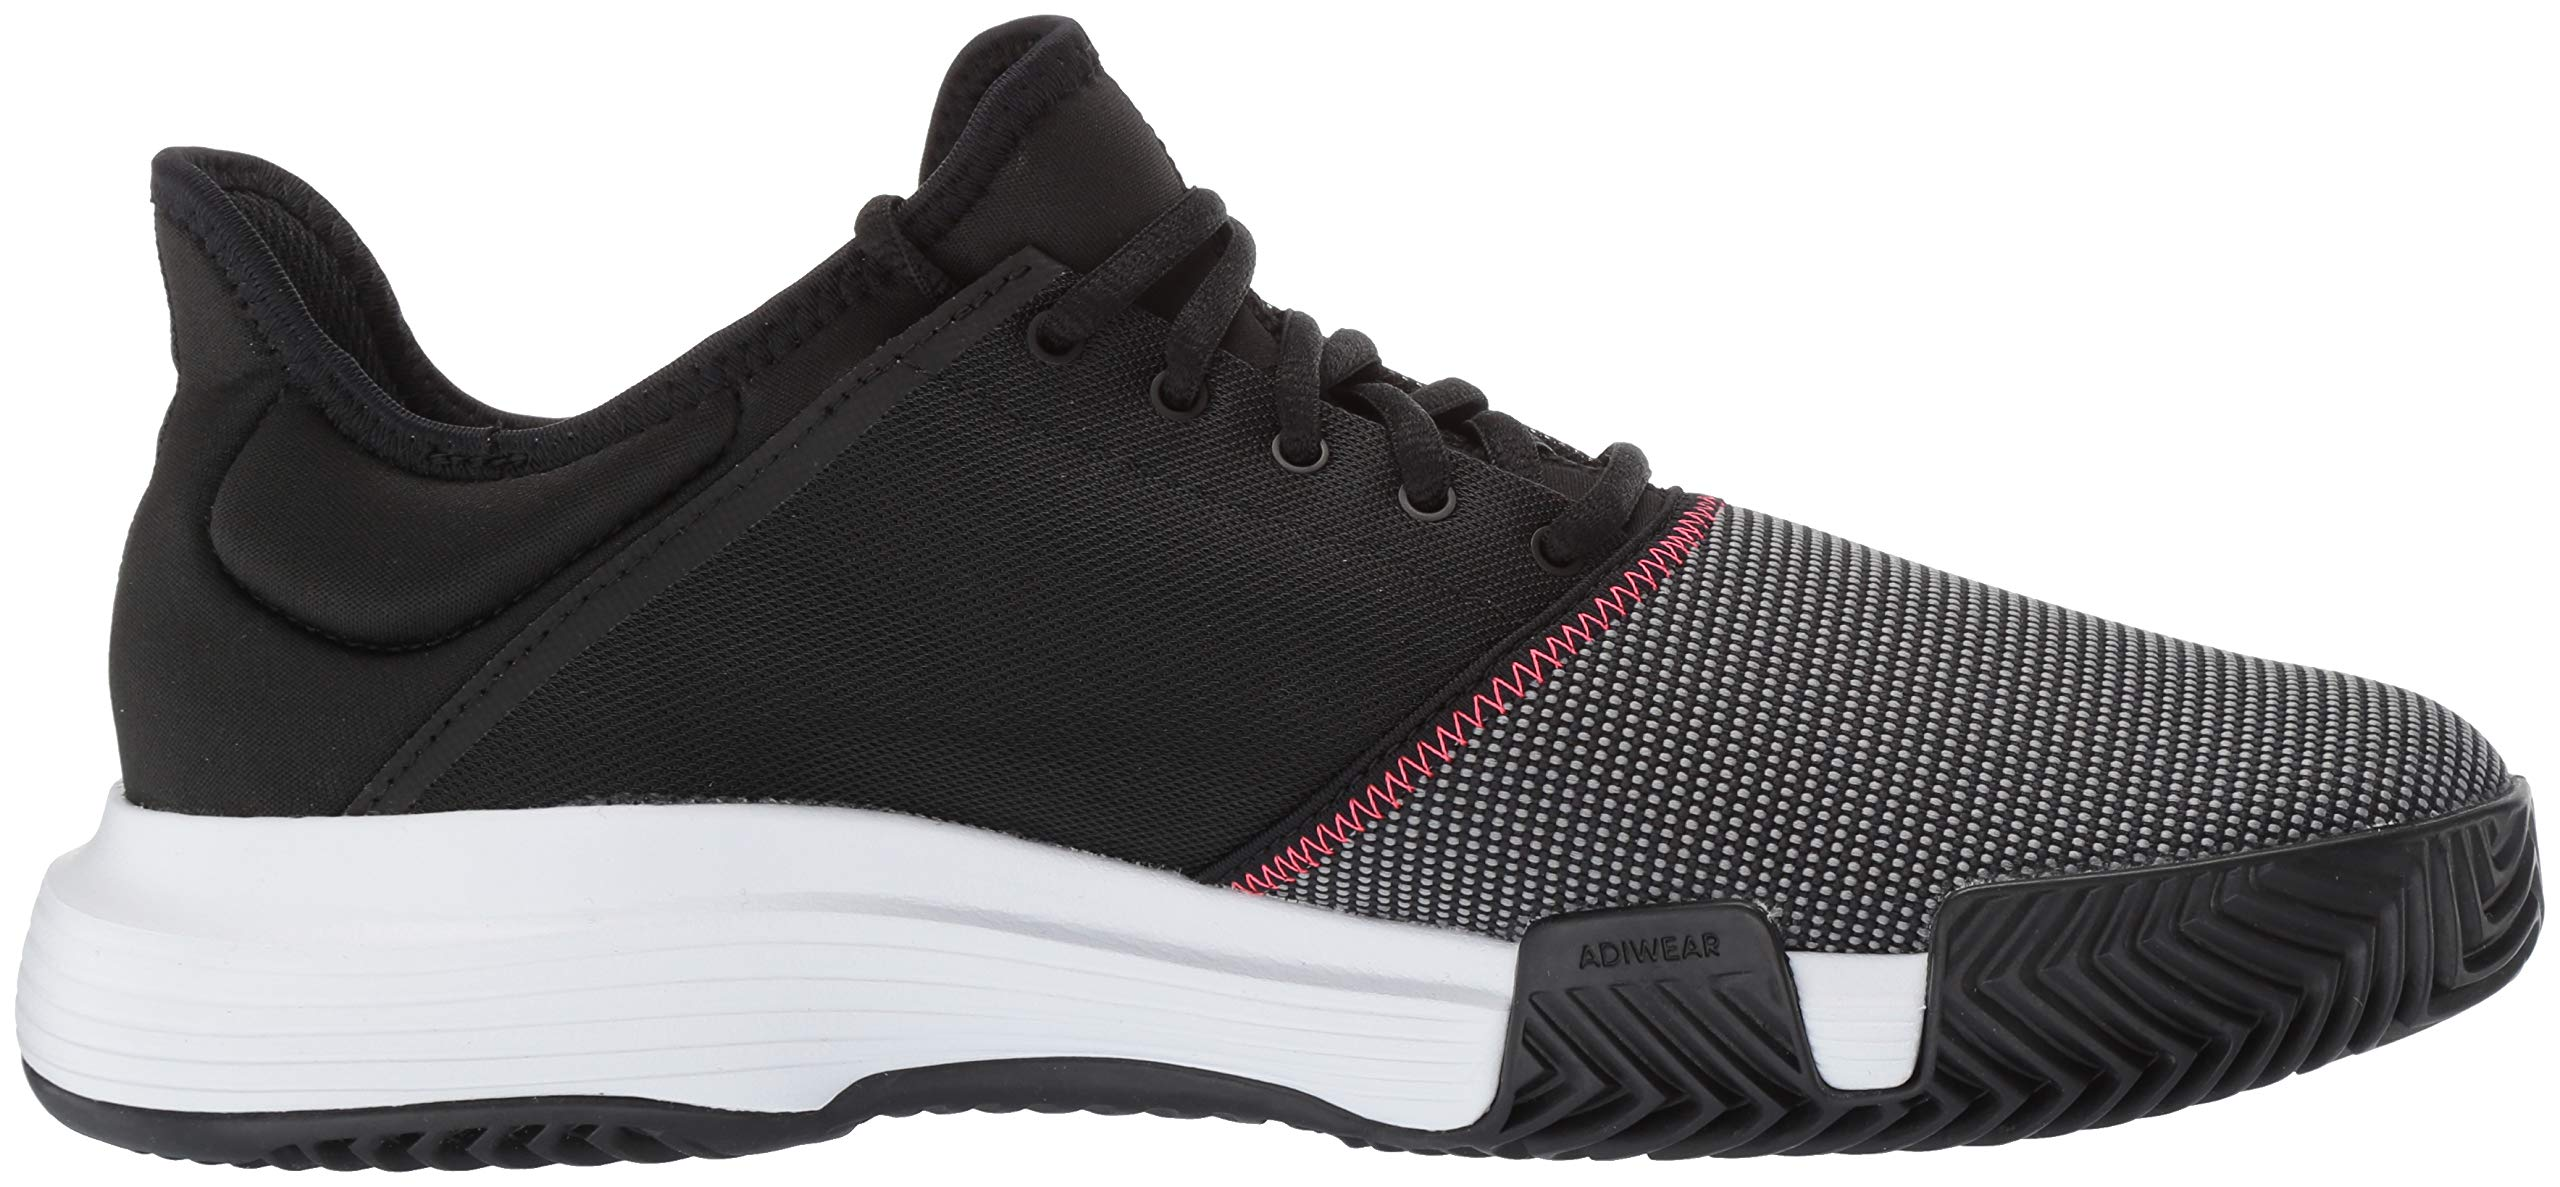 adidas Men's Gamecourt, Black/White/Shock red, 6.5 M US by adidas (Image #6)